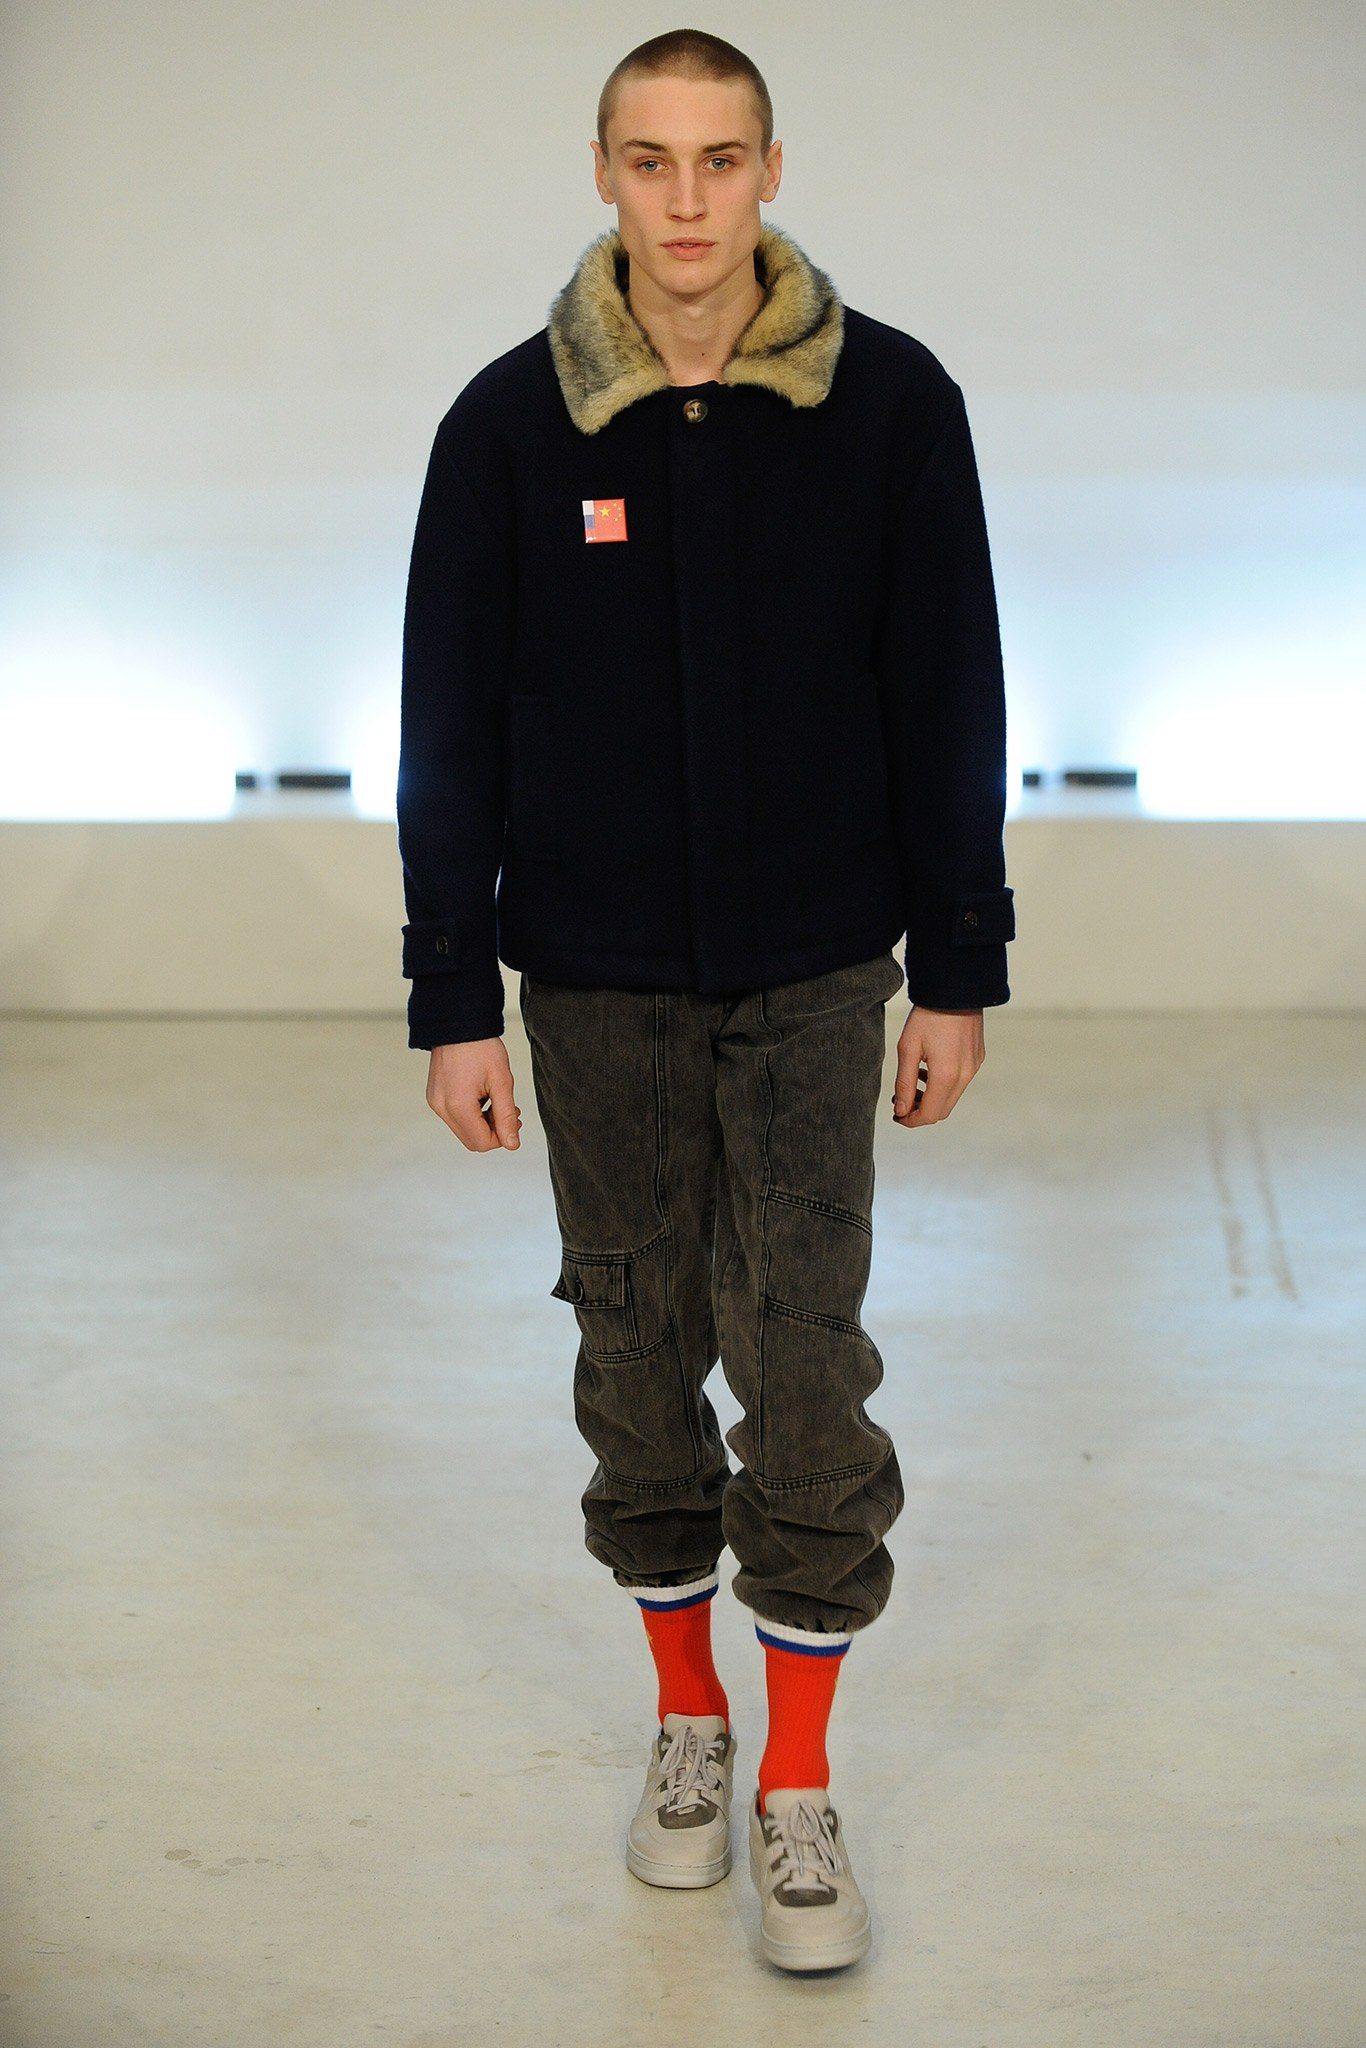 https-::www.vogue.com:fashion-shows:fall-2015-menswear:gosha-rubchinskiy:slideshow:collection#3.jpg